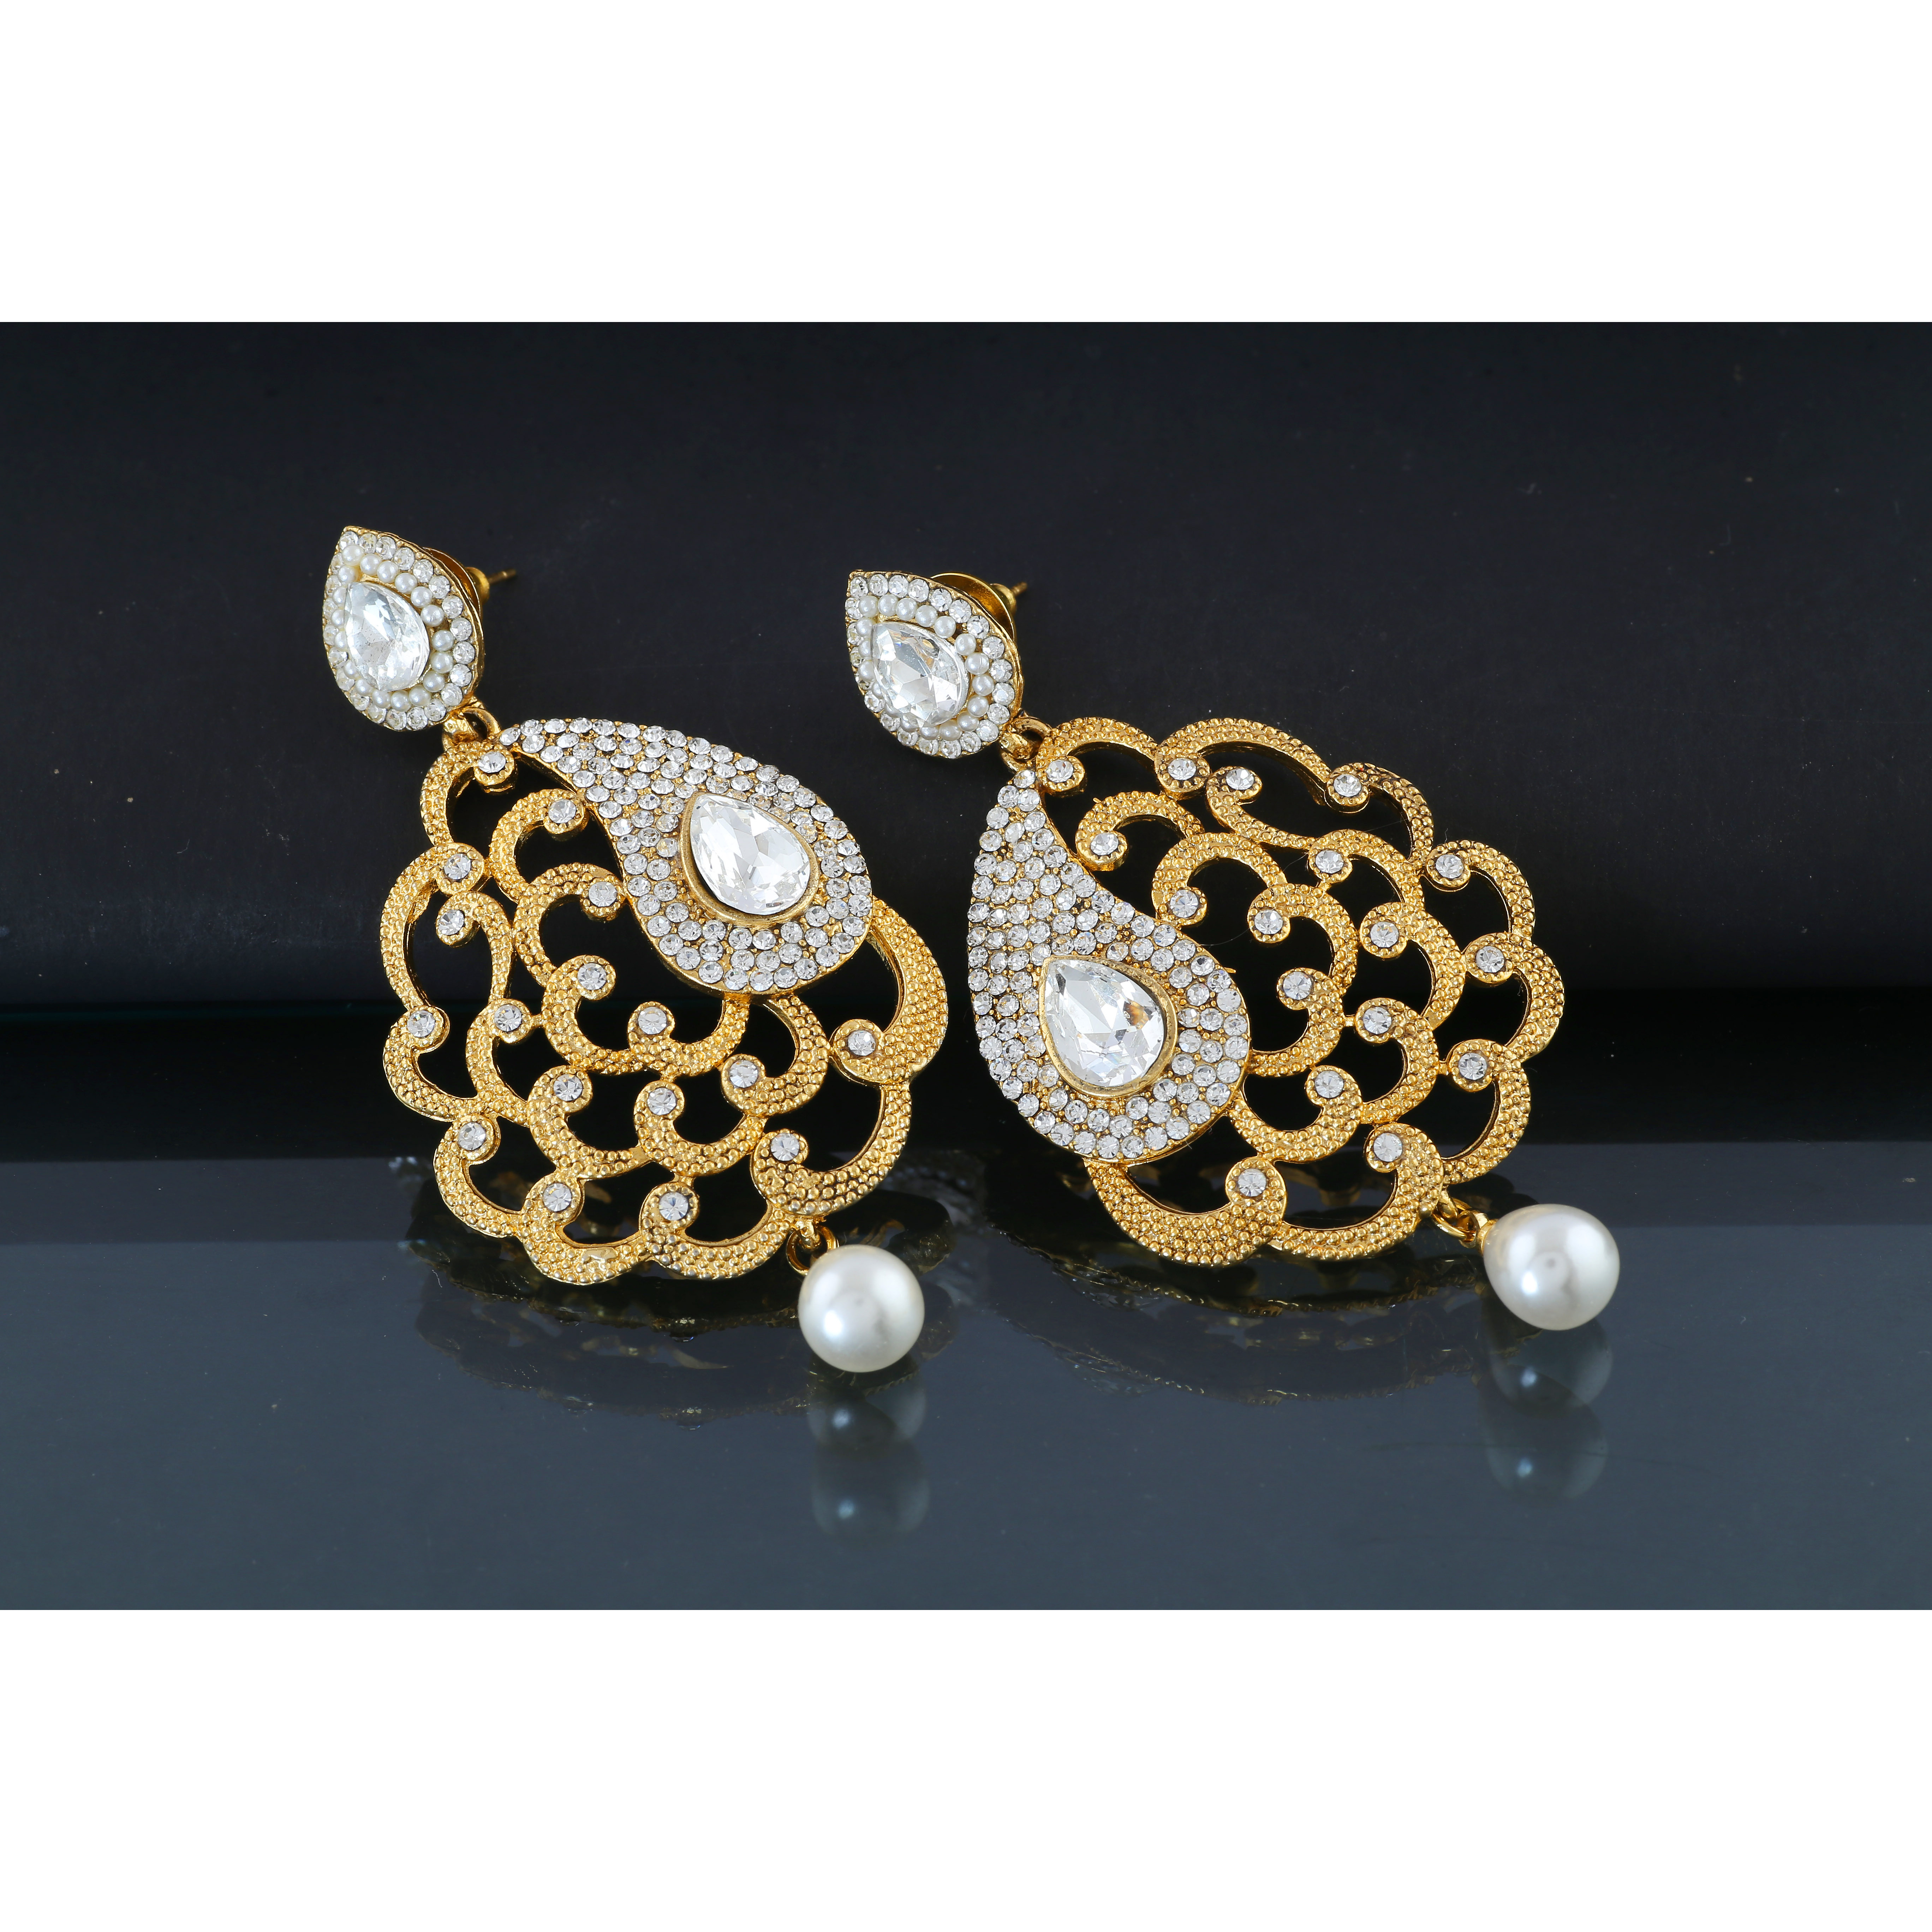 Anuradha Art Gold Touch Studded With Sparkling White Stones Fancy Stylish Traditional Earrings For Women/Girls